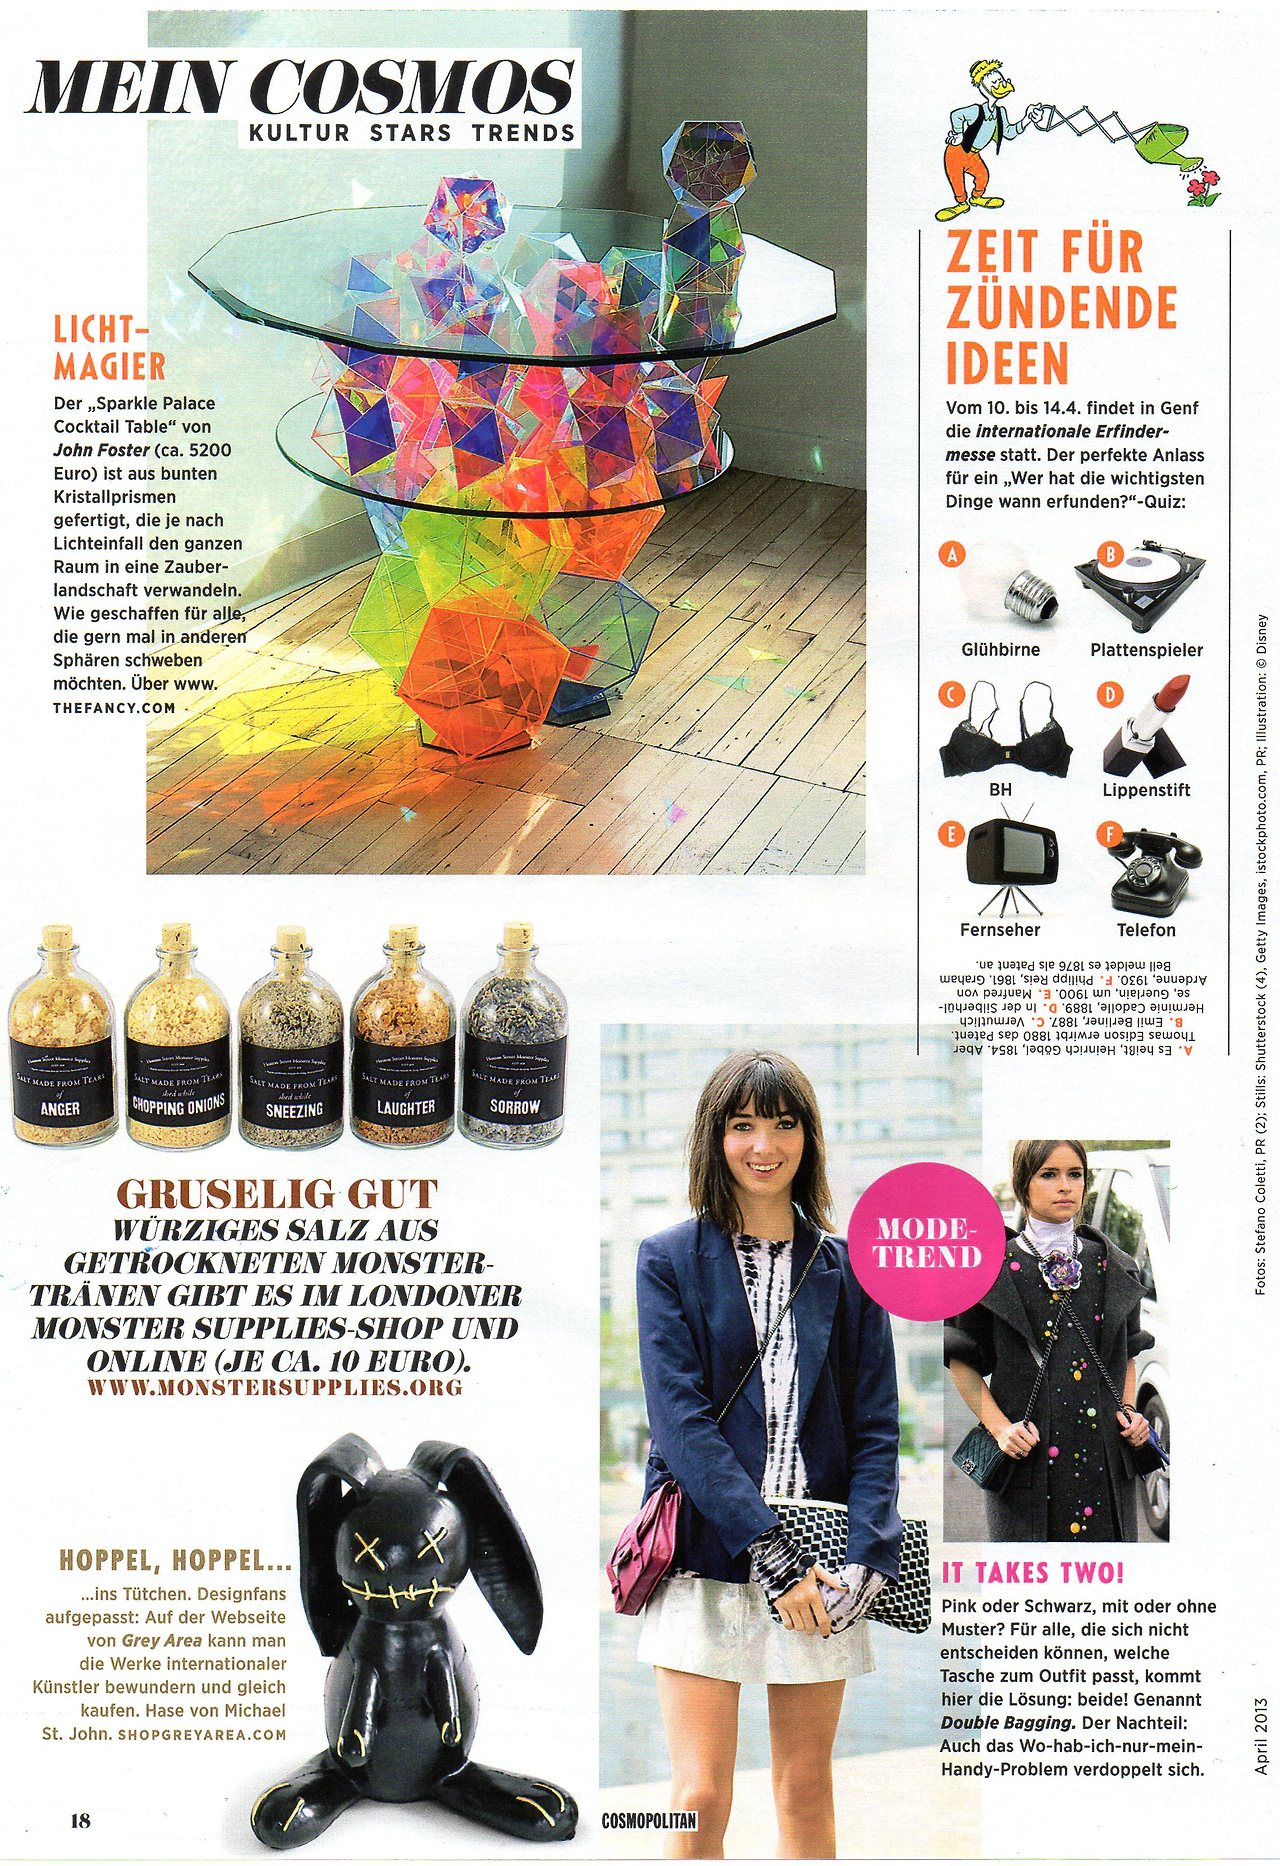 HOPPEL HOPPEL…     MASCOTS   by  MICHAEL ST. JOHN       Featured in  Cosmopolitan Germany, April 2013      See  GREY AREA  for details & email info@shopgreyarea.com for sales inquiries